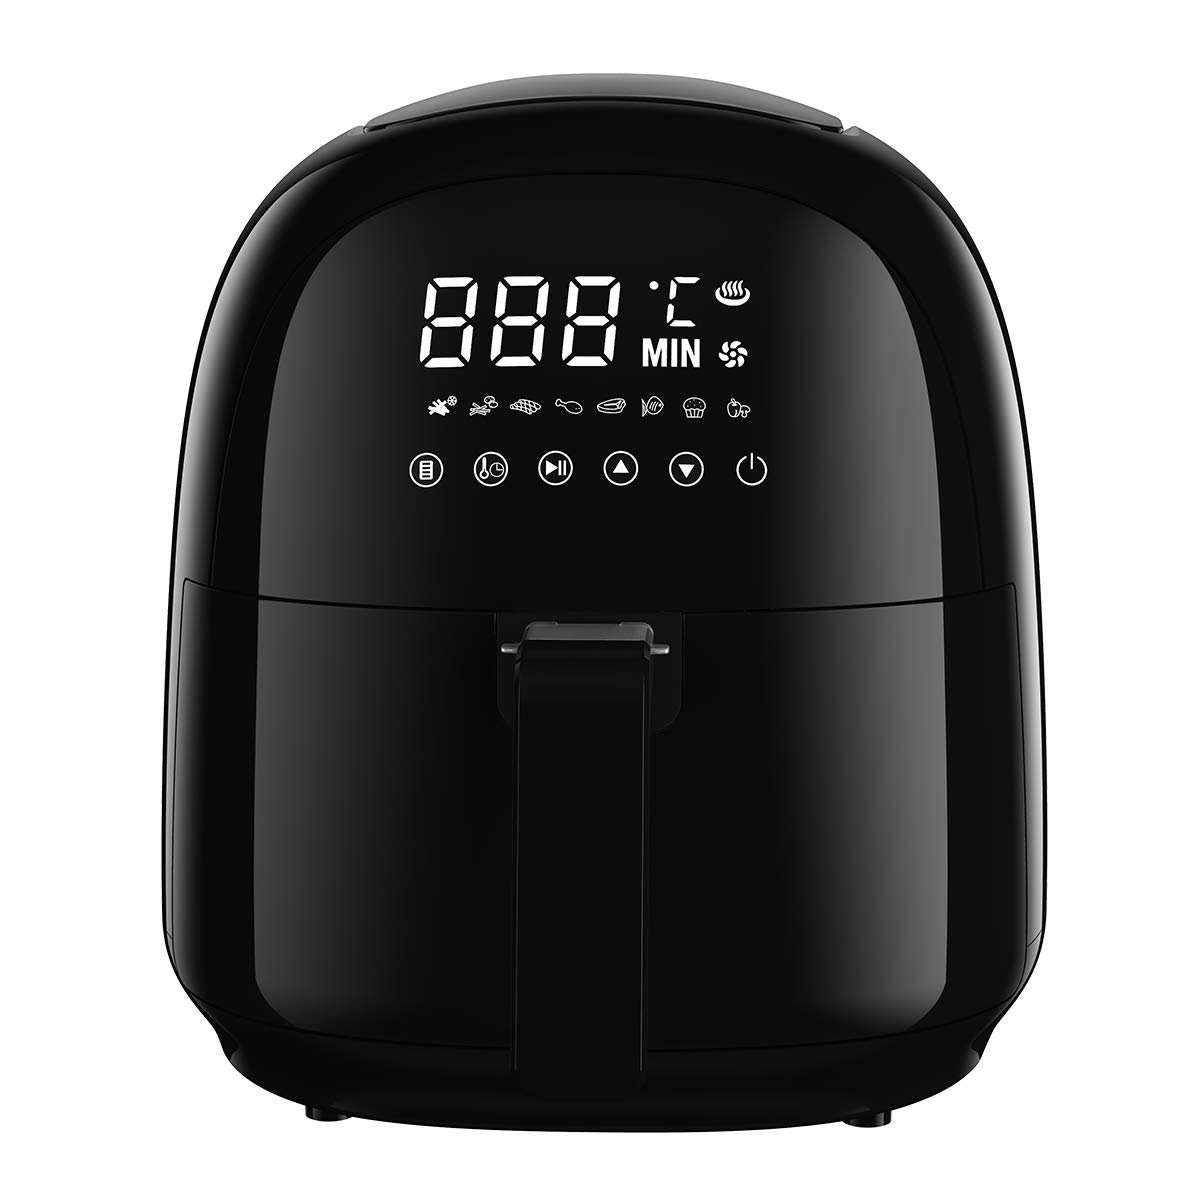 Power Air Fryer Oven, Rackaphile Electric Air Fryers 3.7 Qt No Oil Hot Airfryer with 8 Preset Settings, Temperature Timer Control, 360° Rapid Hot Air Technology, Digital LED Touch Screen, Oil-Free and Healthy, for Home Kitchen Meals, Black